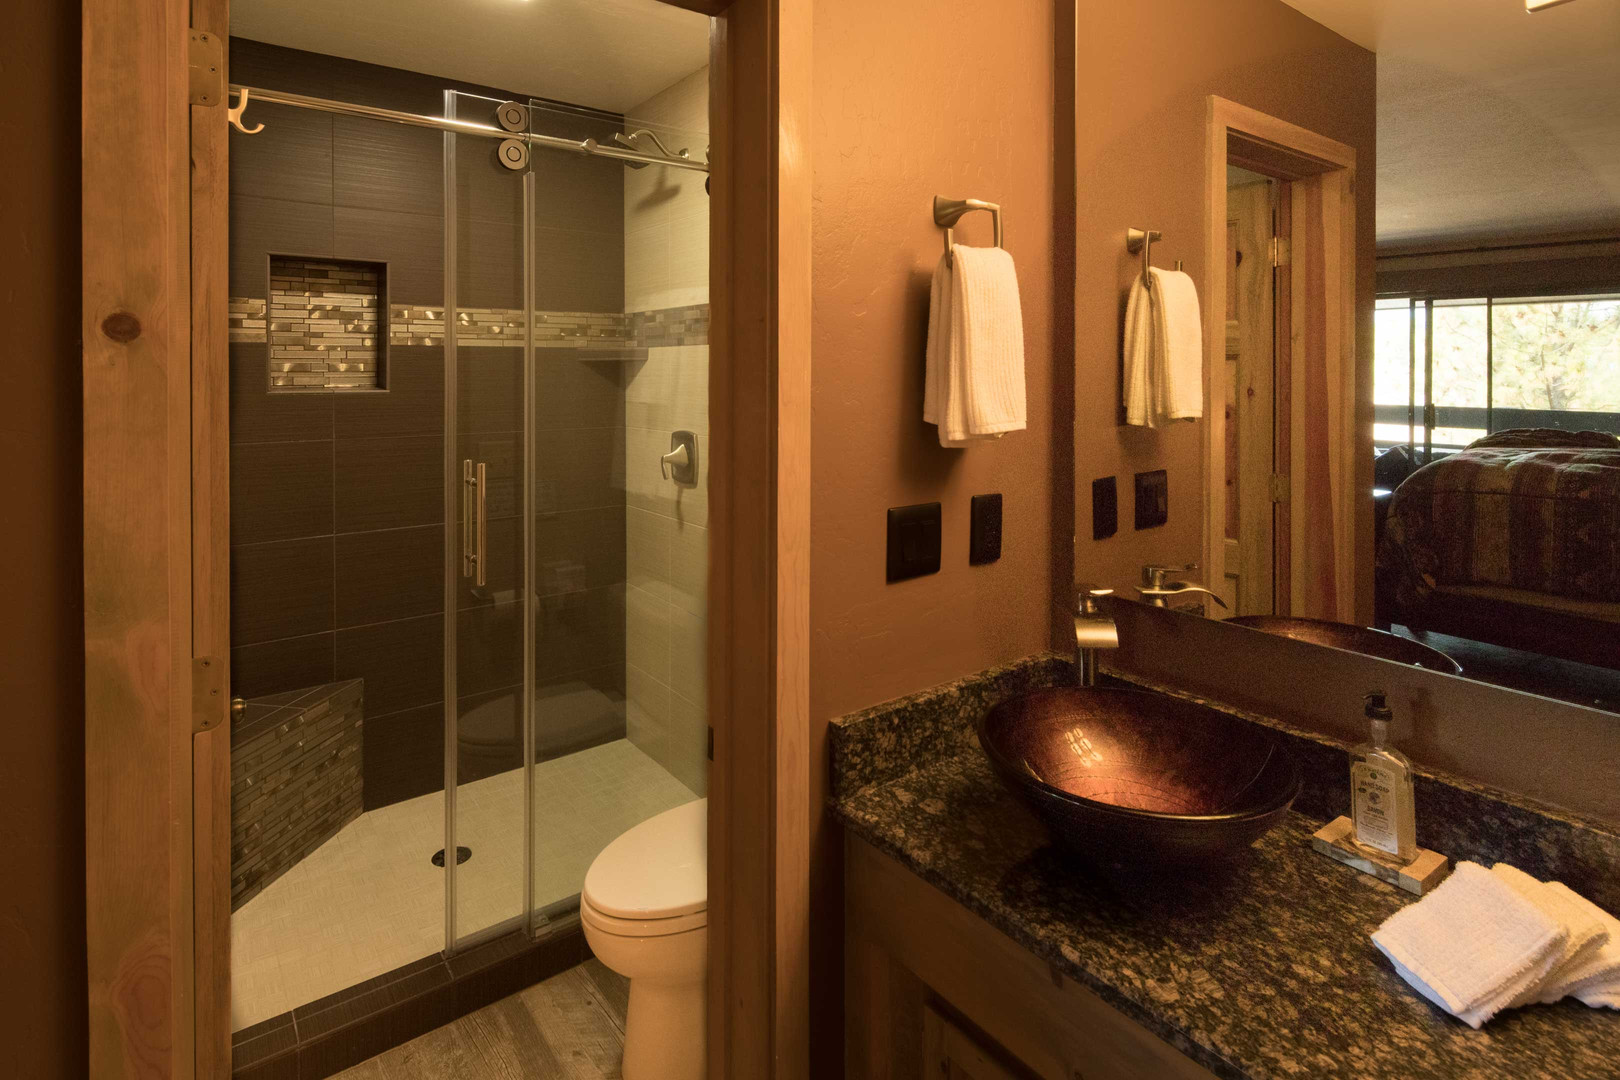 Each Bathroom has Spa Amenities & Local Complimentary Toiletries